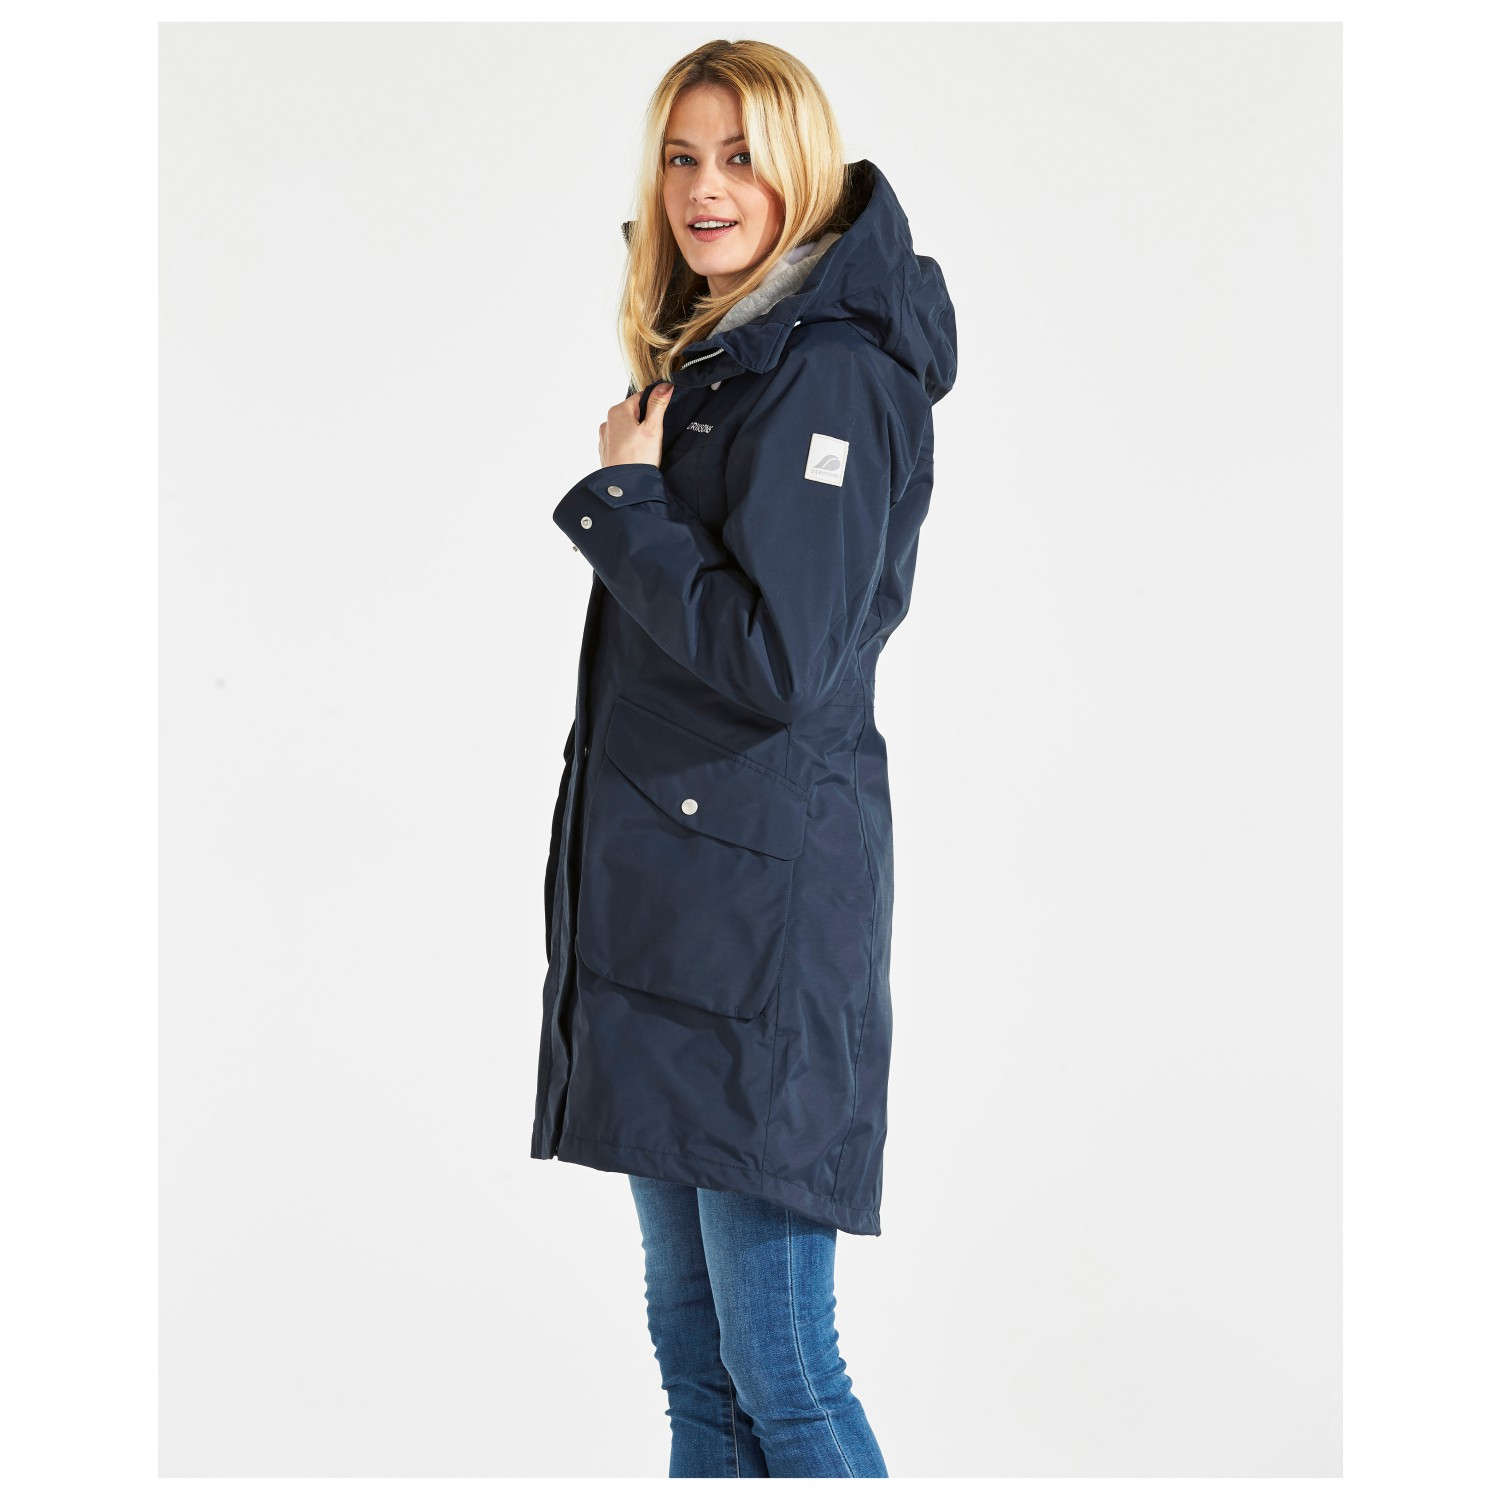 21dabf58968 Didriksons Thelma Parka - Coat Women's   Free UK Delivery ...